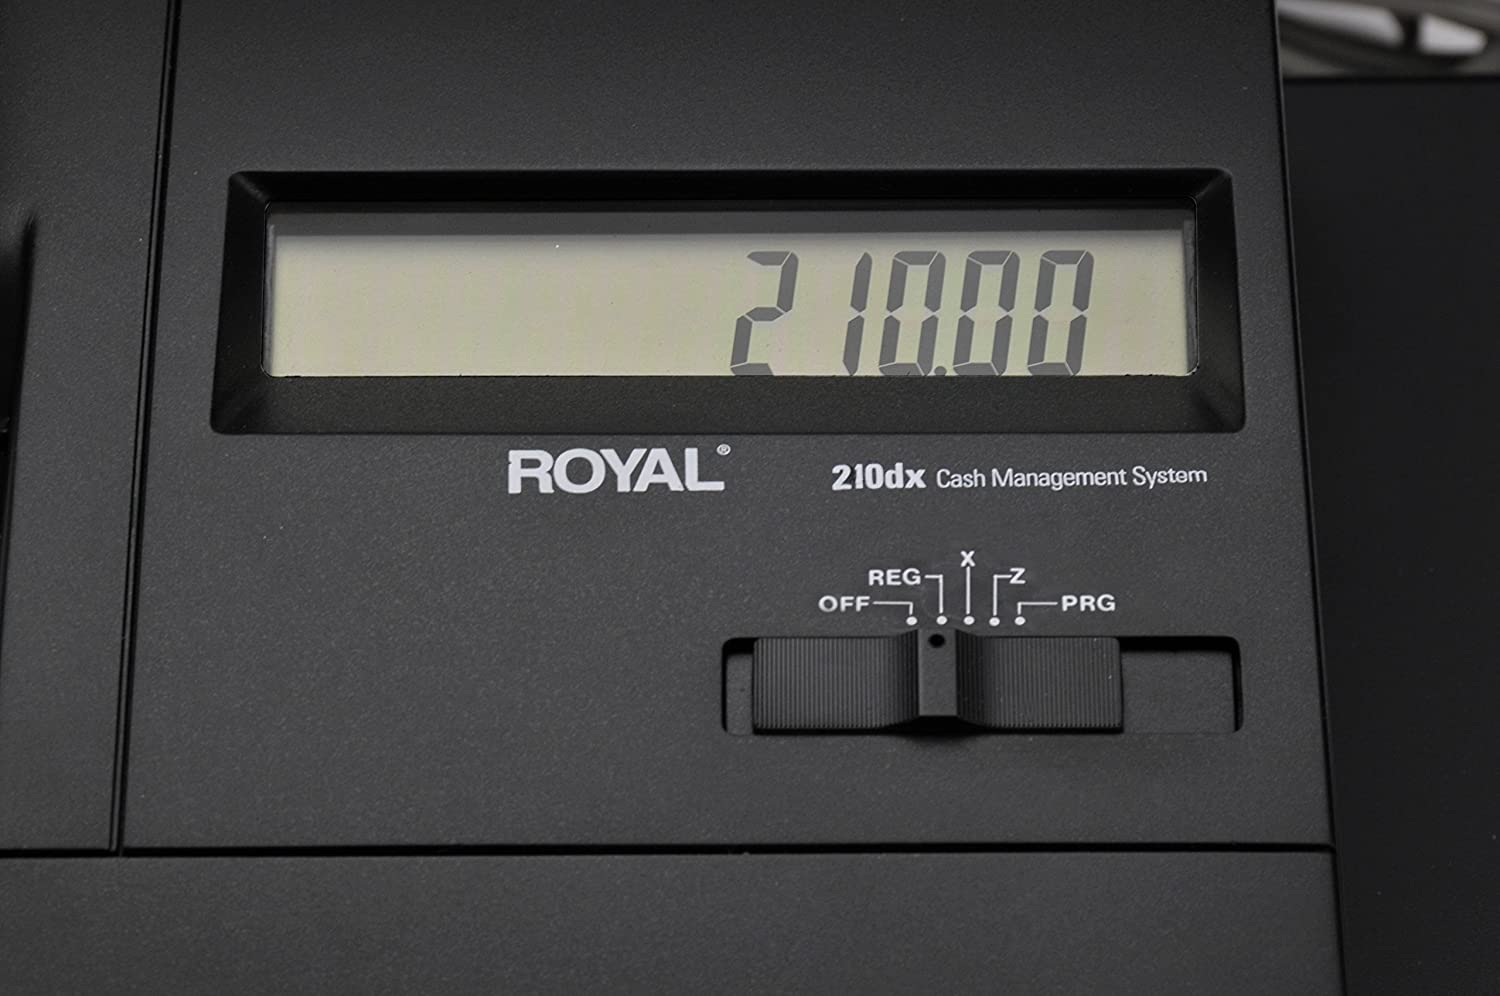 Amazon.com : Royal 210DX Entry Level Thermal Printer Cash Register :  Electronic Cash Registers : Office Products